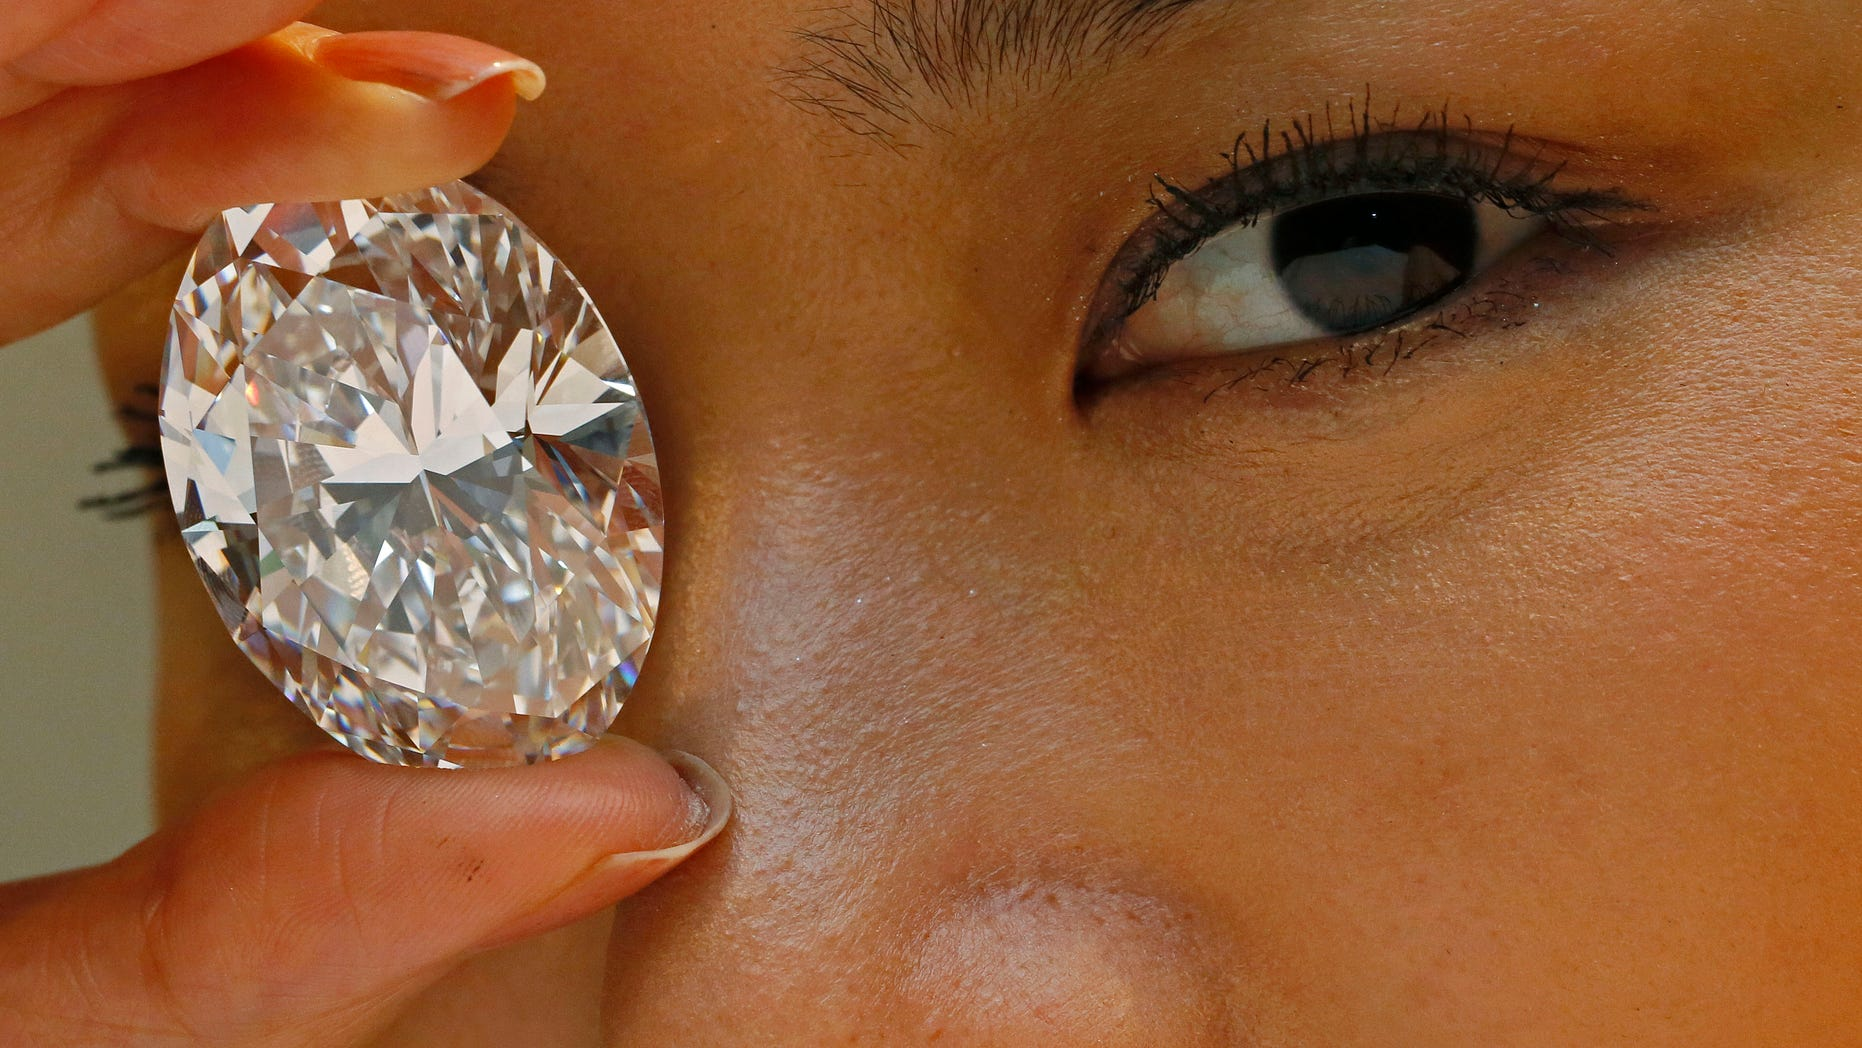 Sept. 19, 2013 - FILE -  A 118.28-carat white diamond is at Sotheby's auction house in Hong Kong. The white diamond the size of a small egg has sold for $27.3 million. A phone bidder bought the rock from Africa at the Oct. 7 sale.